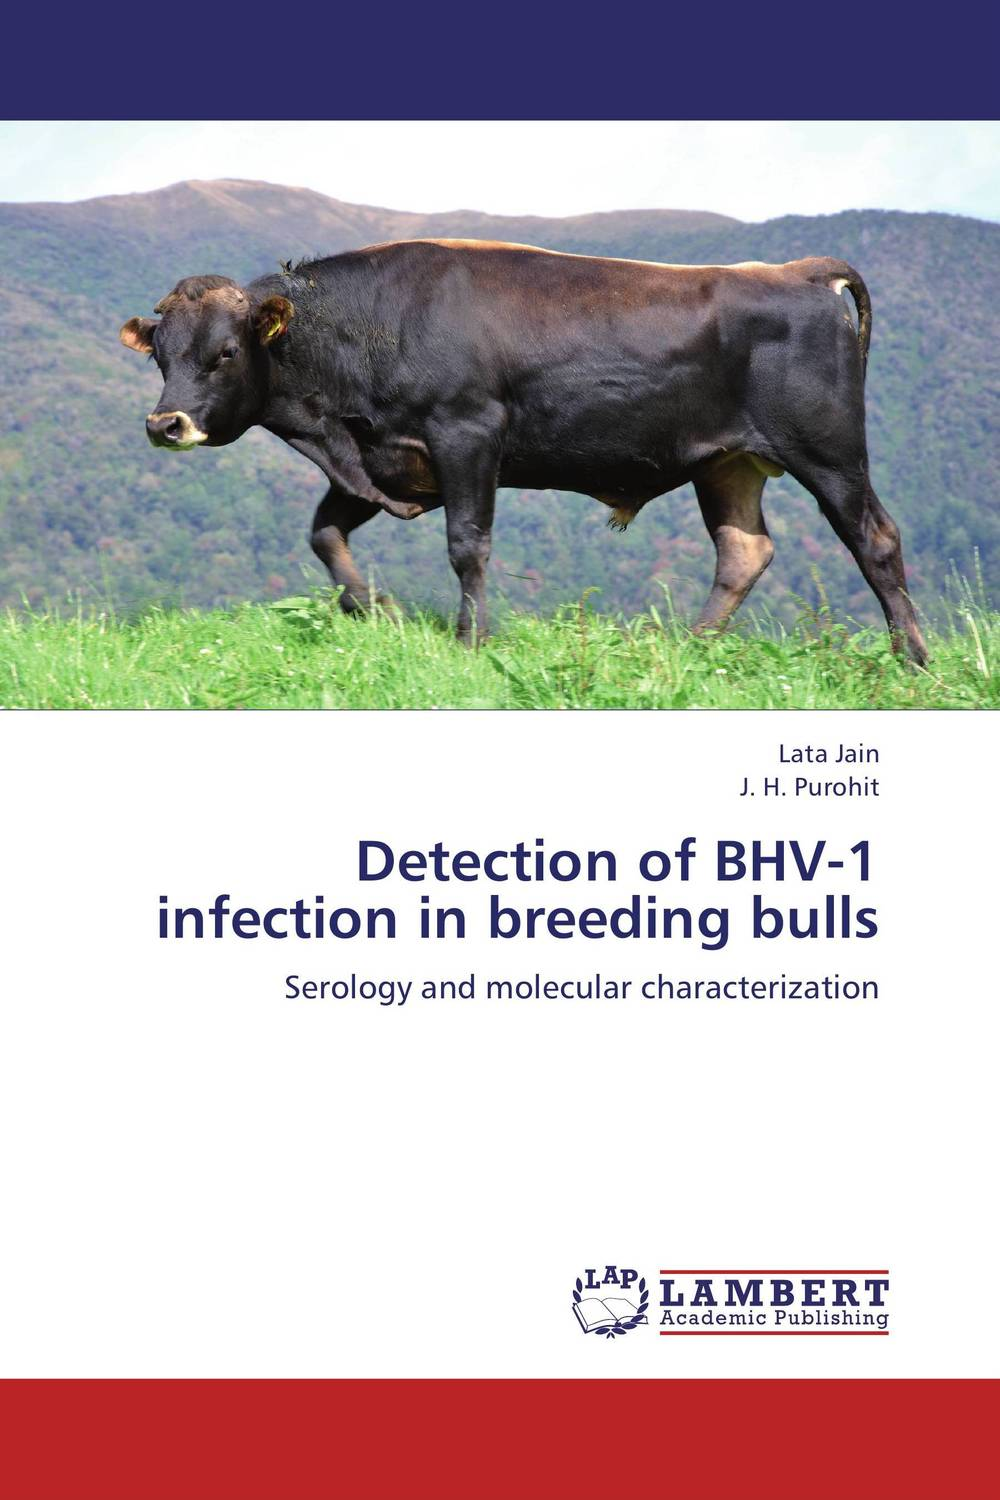 Detection of BHV-1 infection in breeding bulls manuscript found in accra